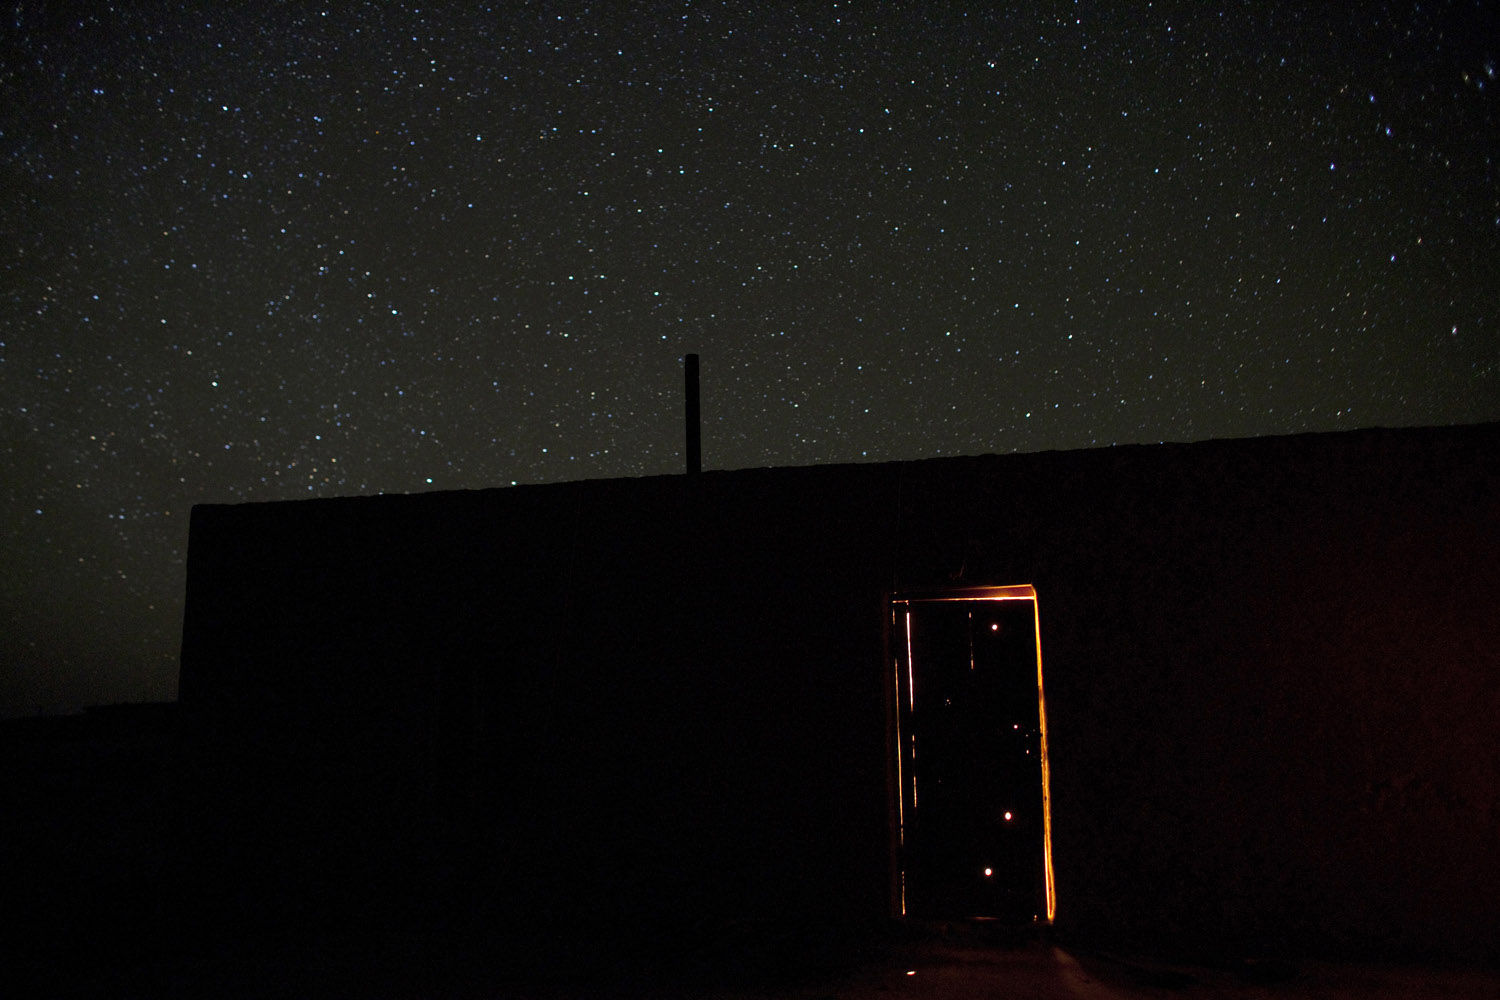 Bullet holes and stars are lit at night in Damla, a desert village whose name means  Drop of Water.                                Damla, Turkmenistan